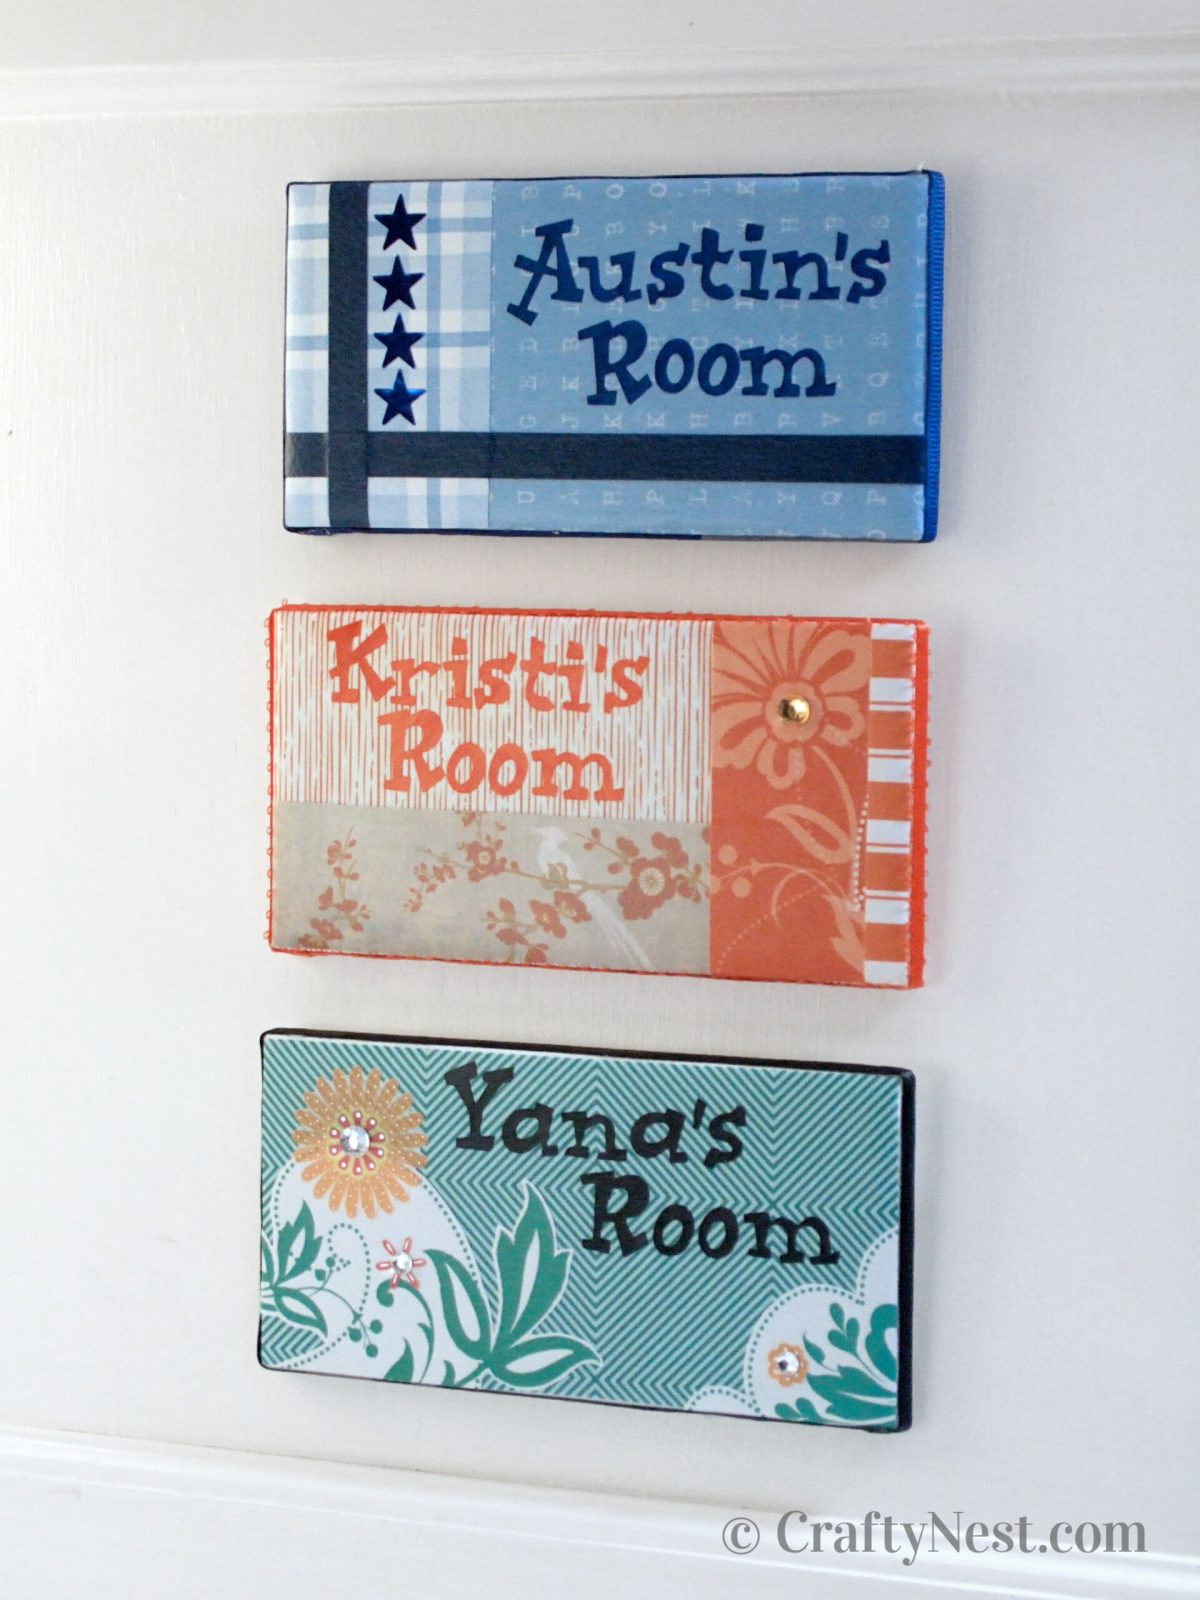 Name plates made from subway tiles, photo